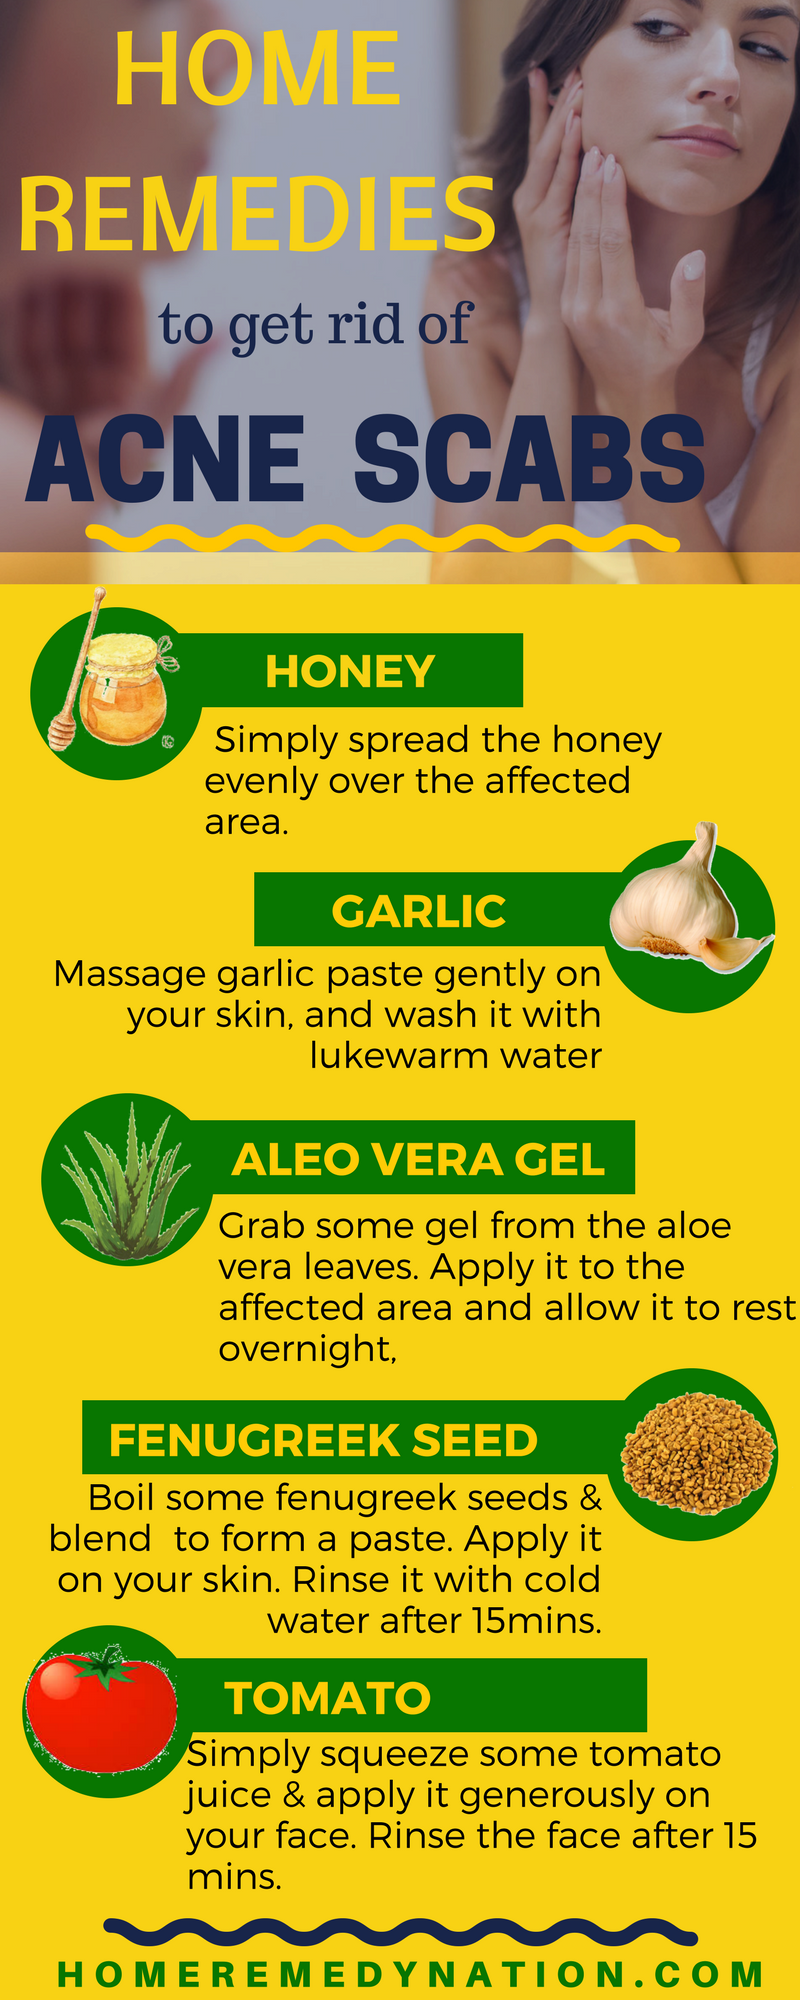 Home Remedies to get rid of Acne Scars